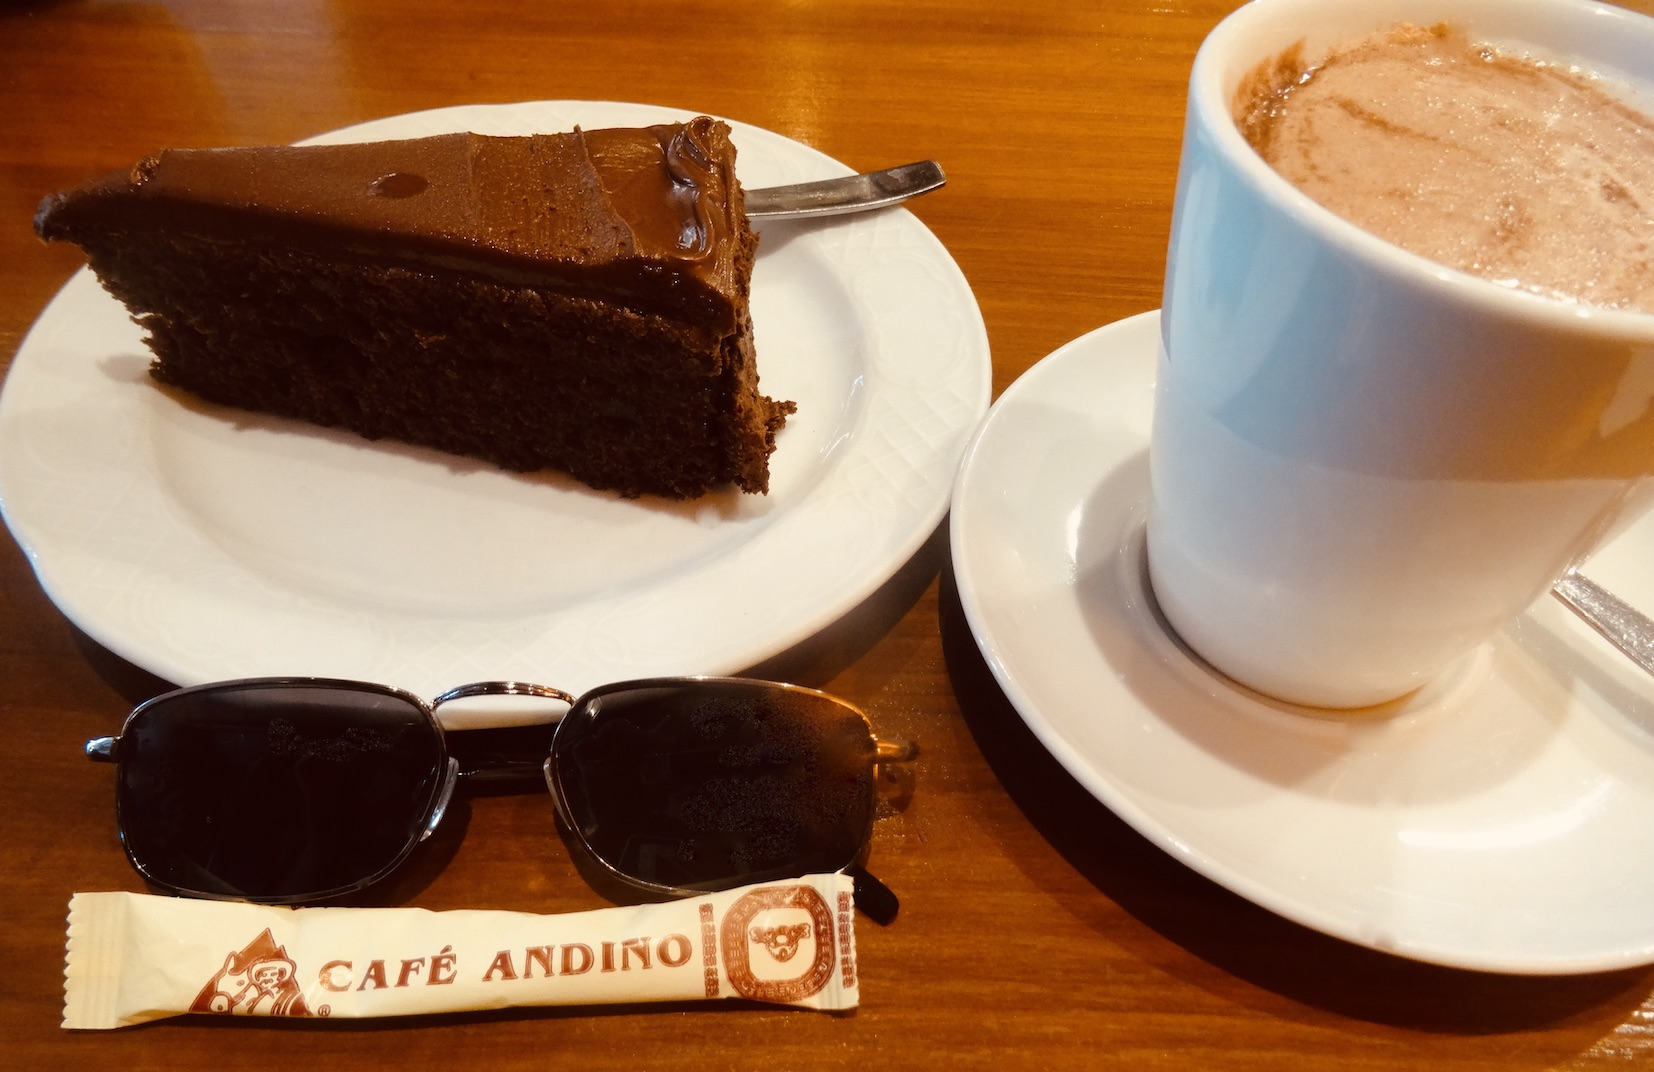 Coffee and cake Cafe Andino Fuengirola.